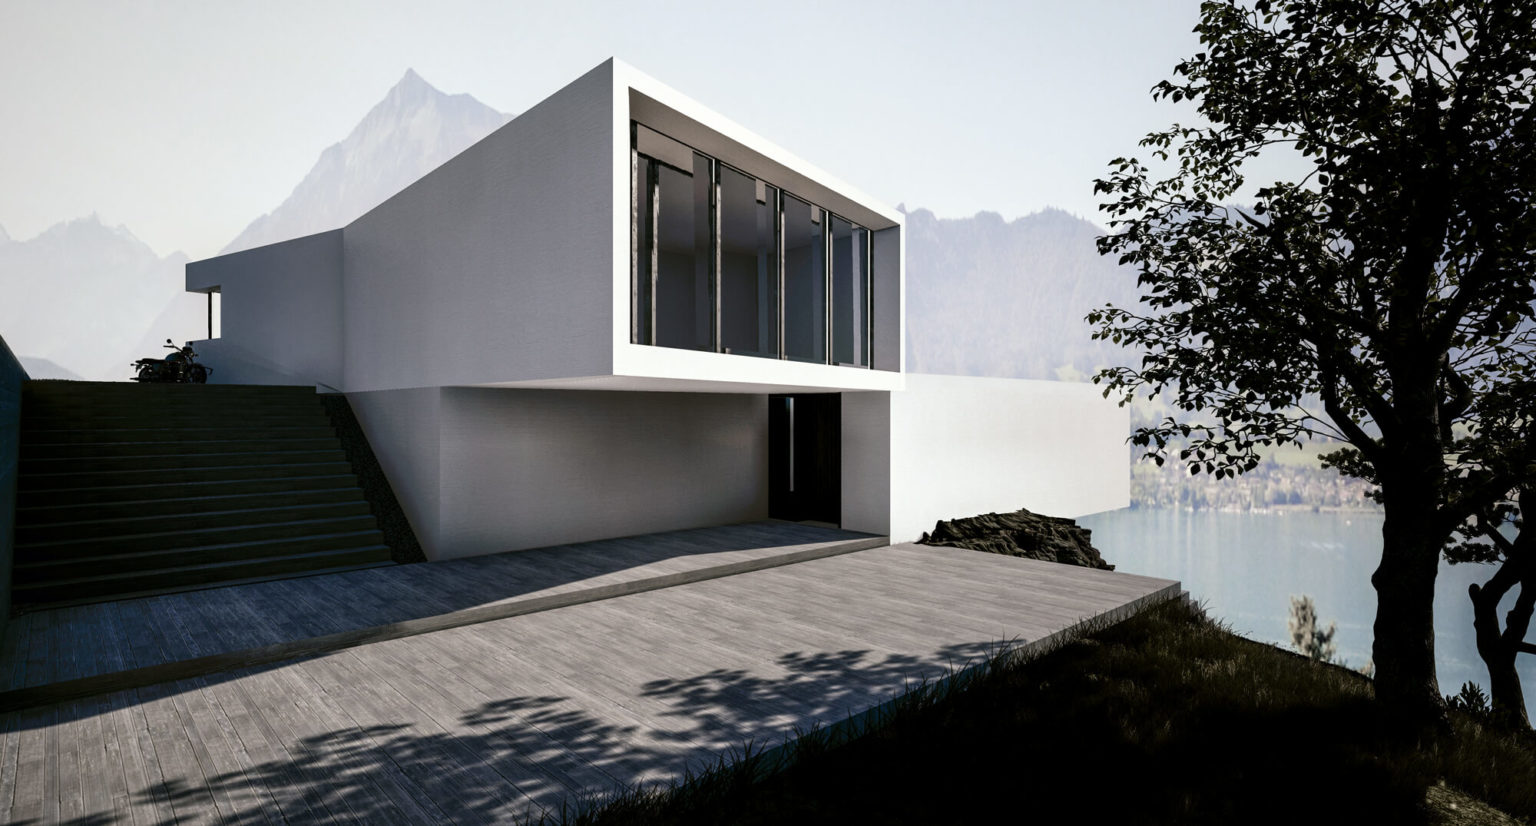 Hector Alamar Architects